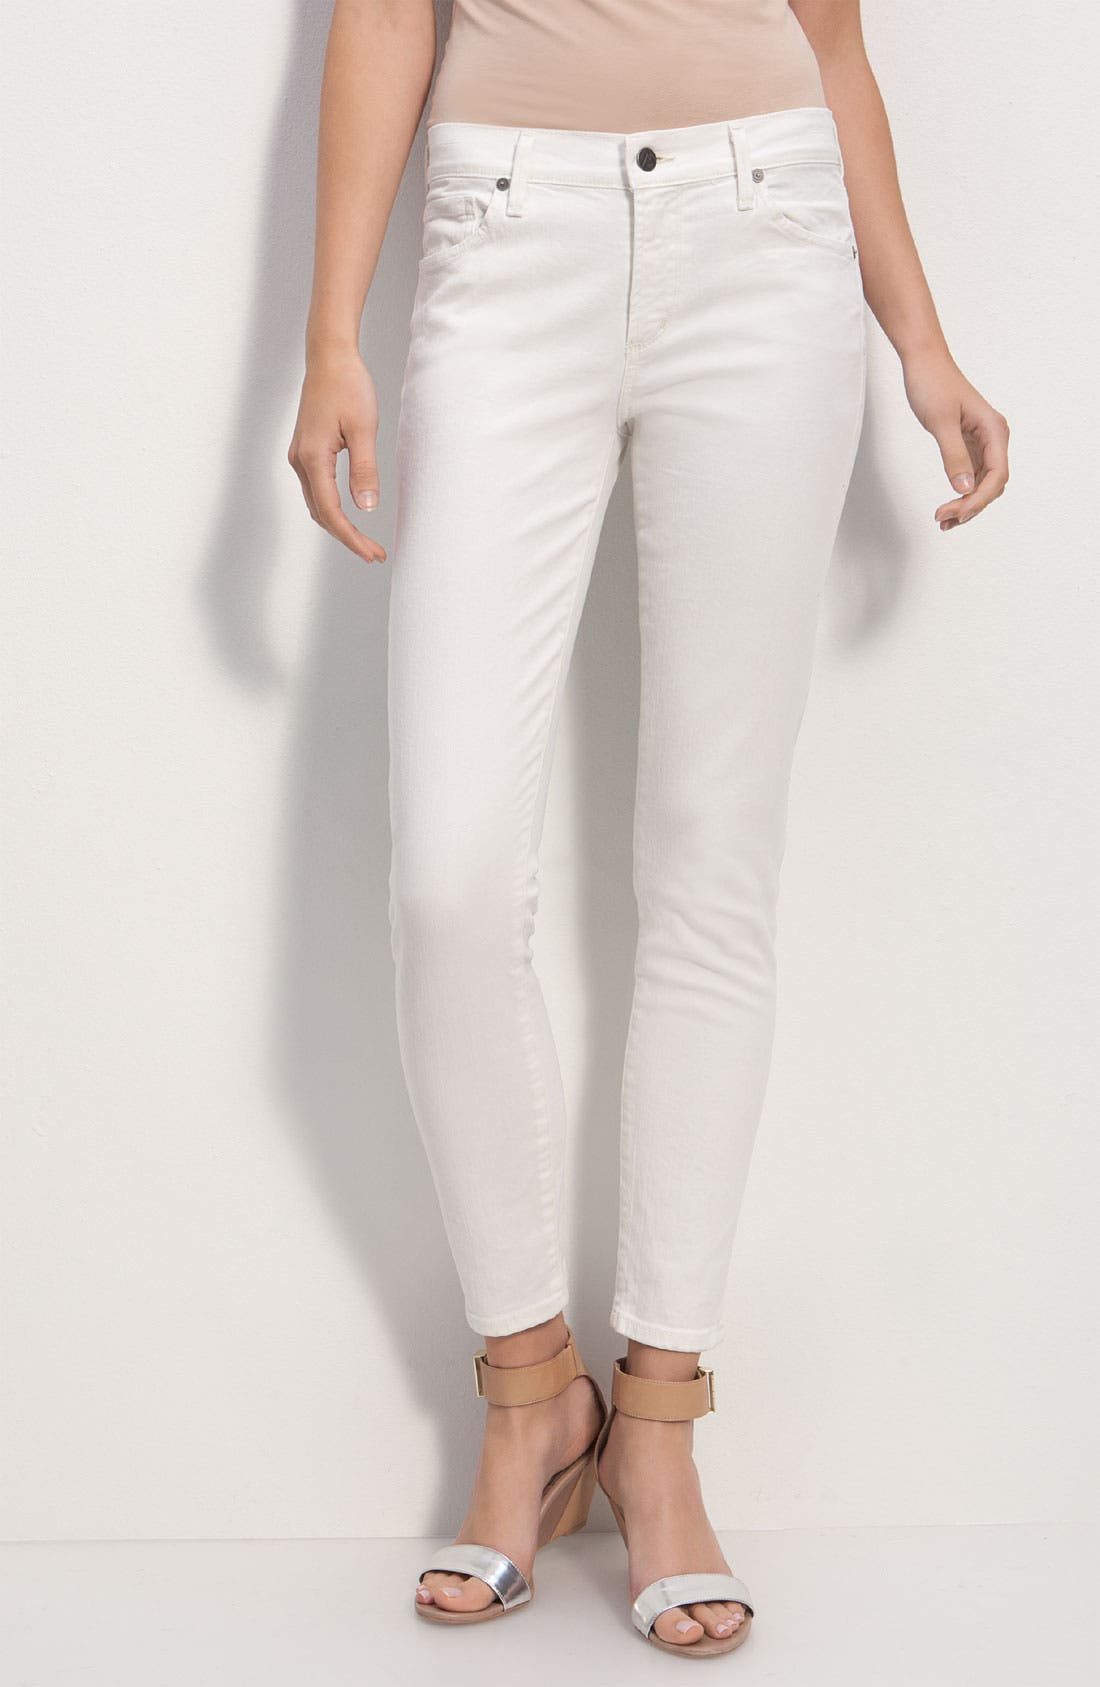 CITIZENS OF HUMANITY,                             'Thompson' Crop Skinny Jeans,                             Alternate thumbnail 3, color,                             900